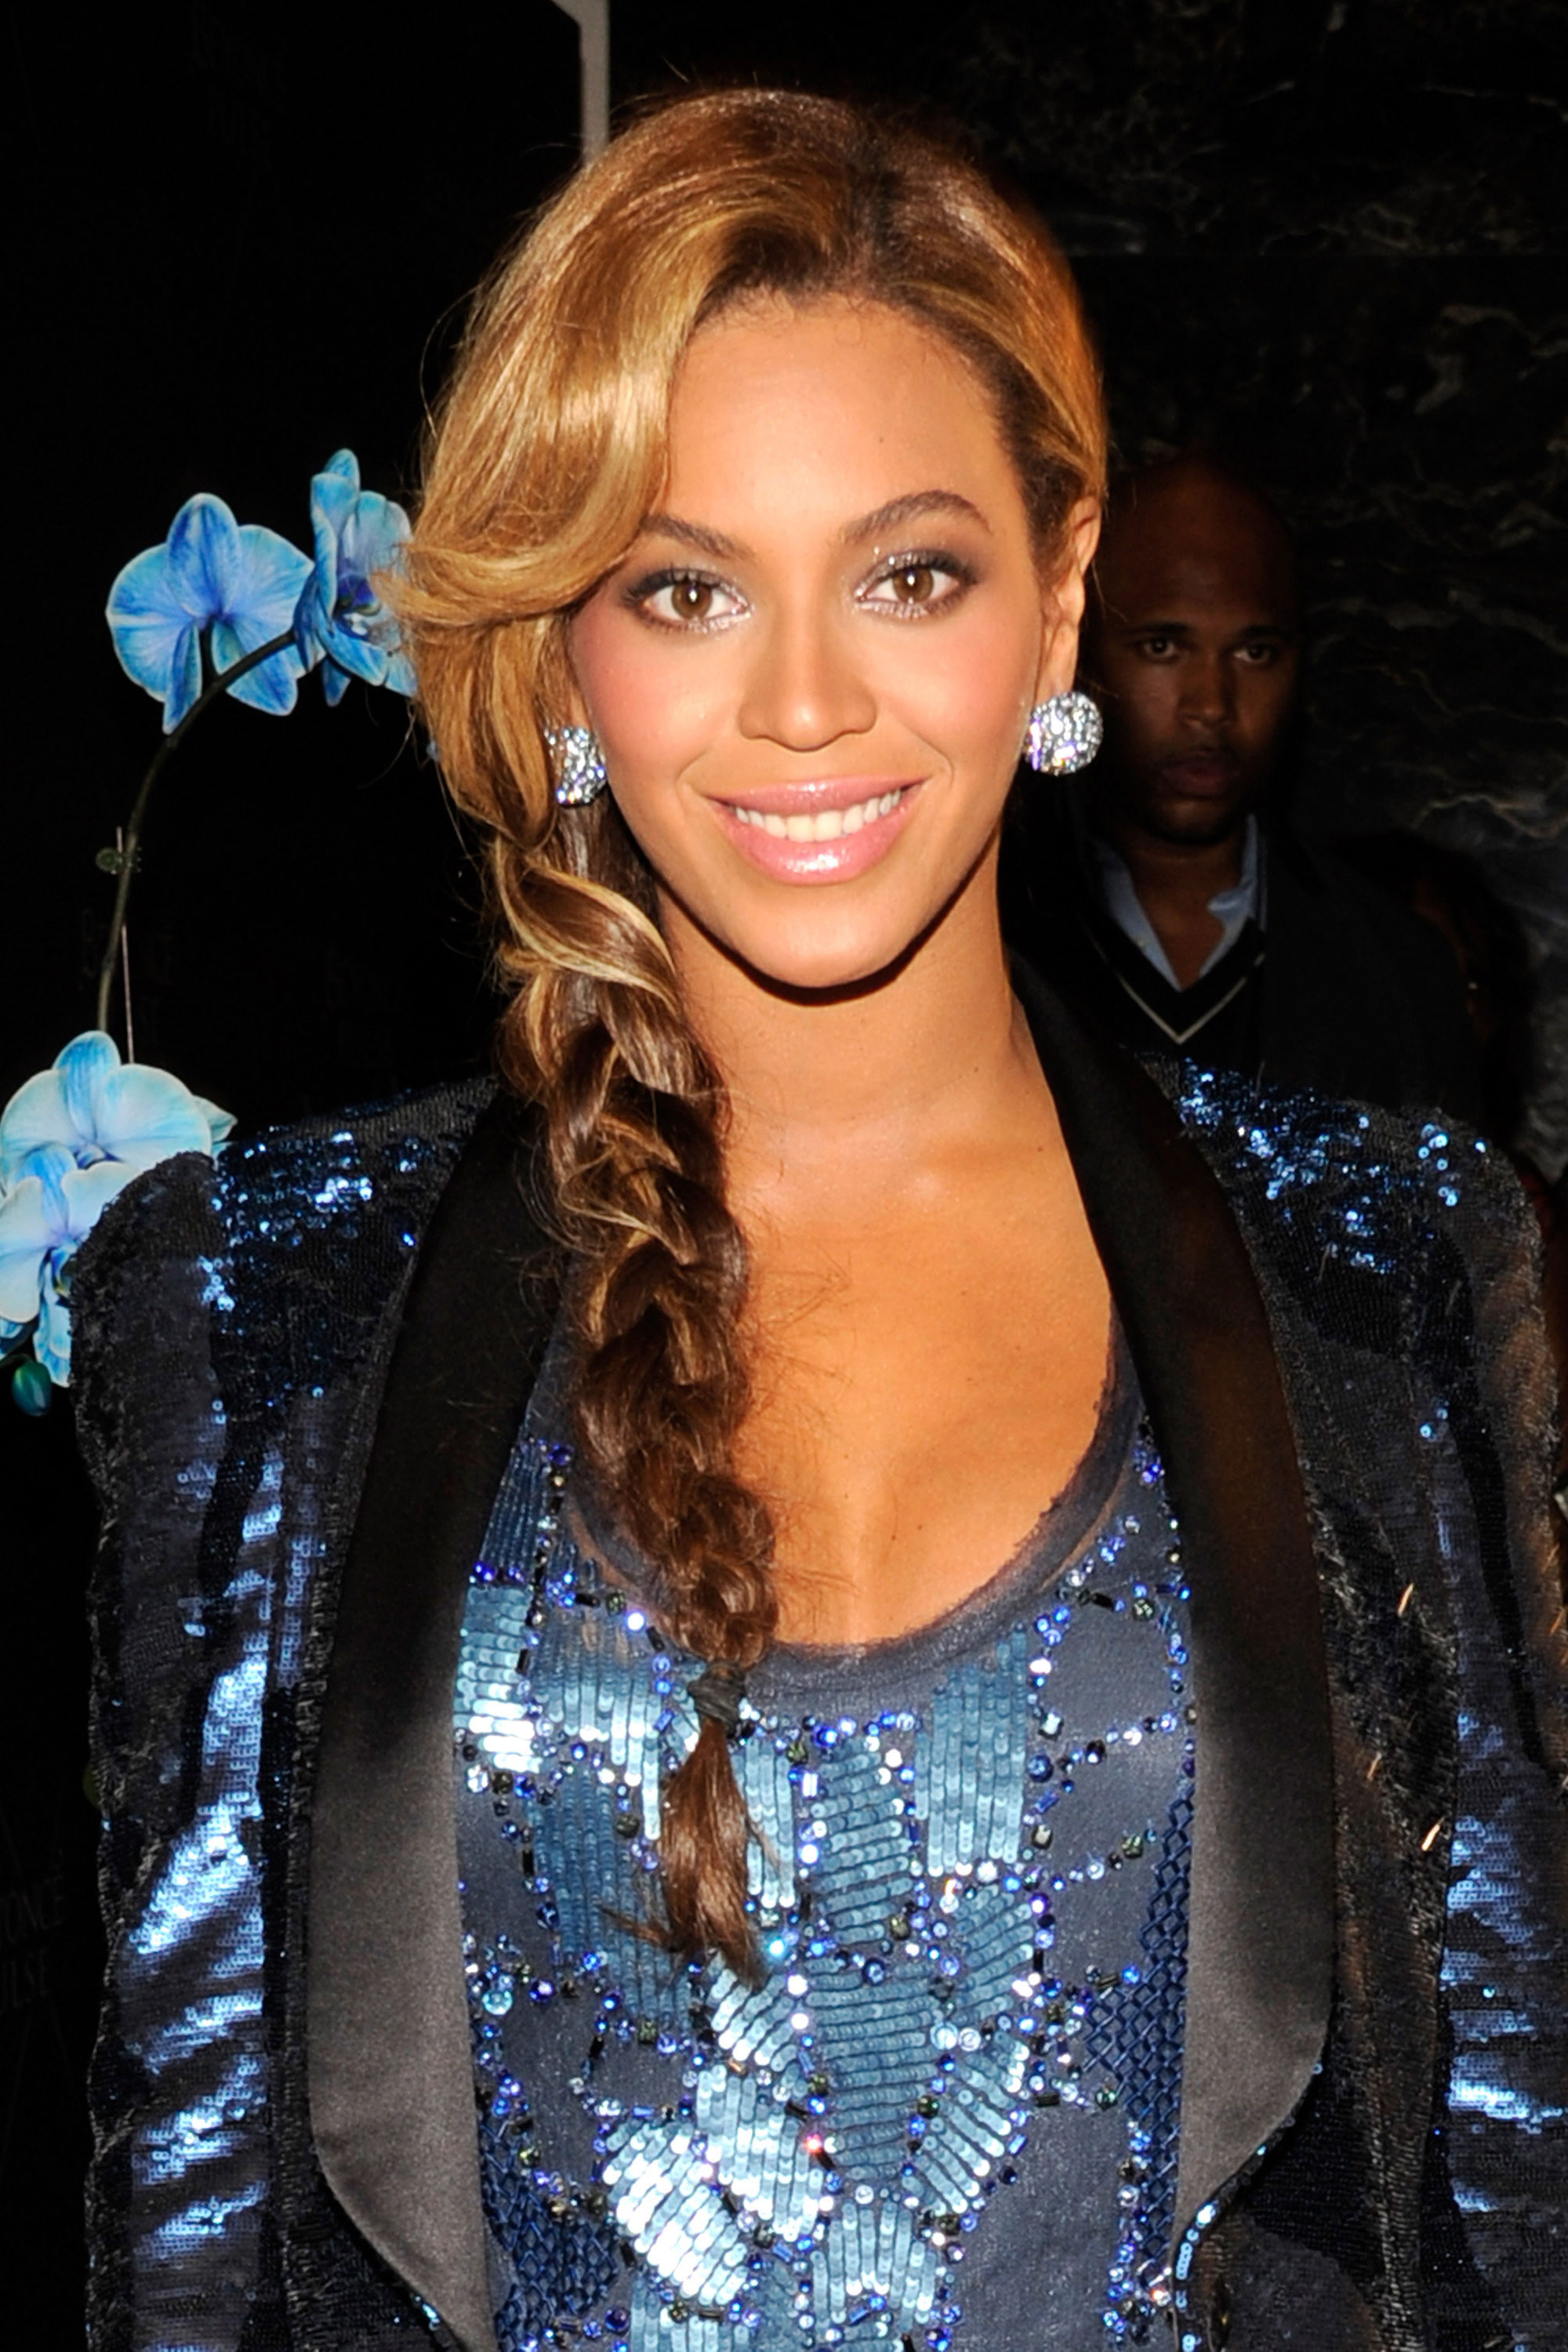 Marvelous 40 Beyonce Hairstyles Beyonce39S Real Hair Long Hair And Short Short Hairstyles For Black Women Fulllsitofus